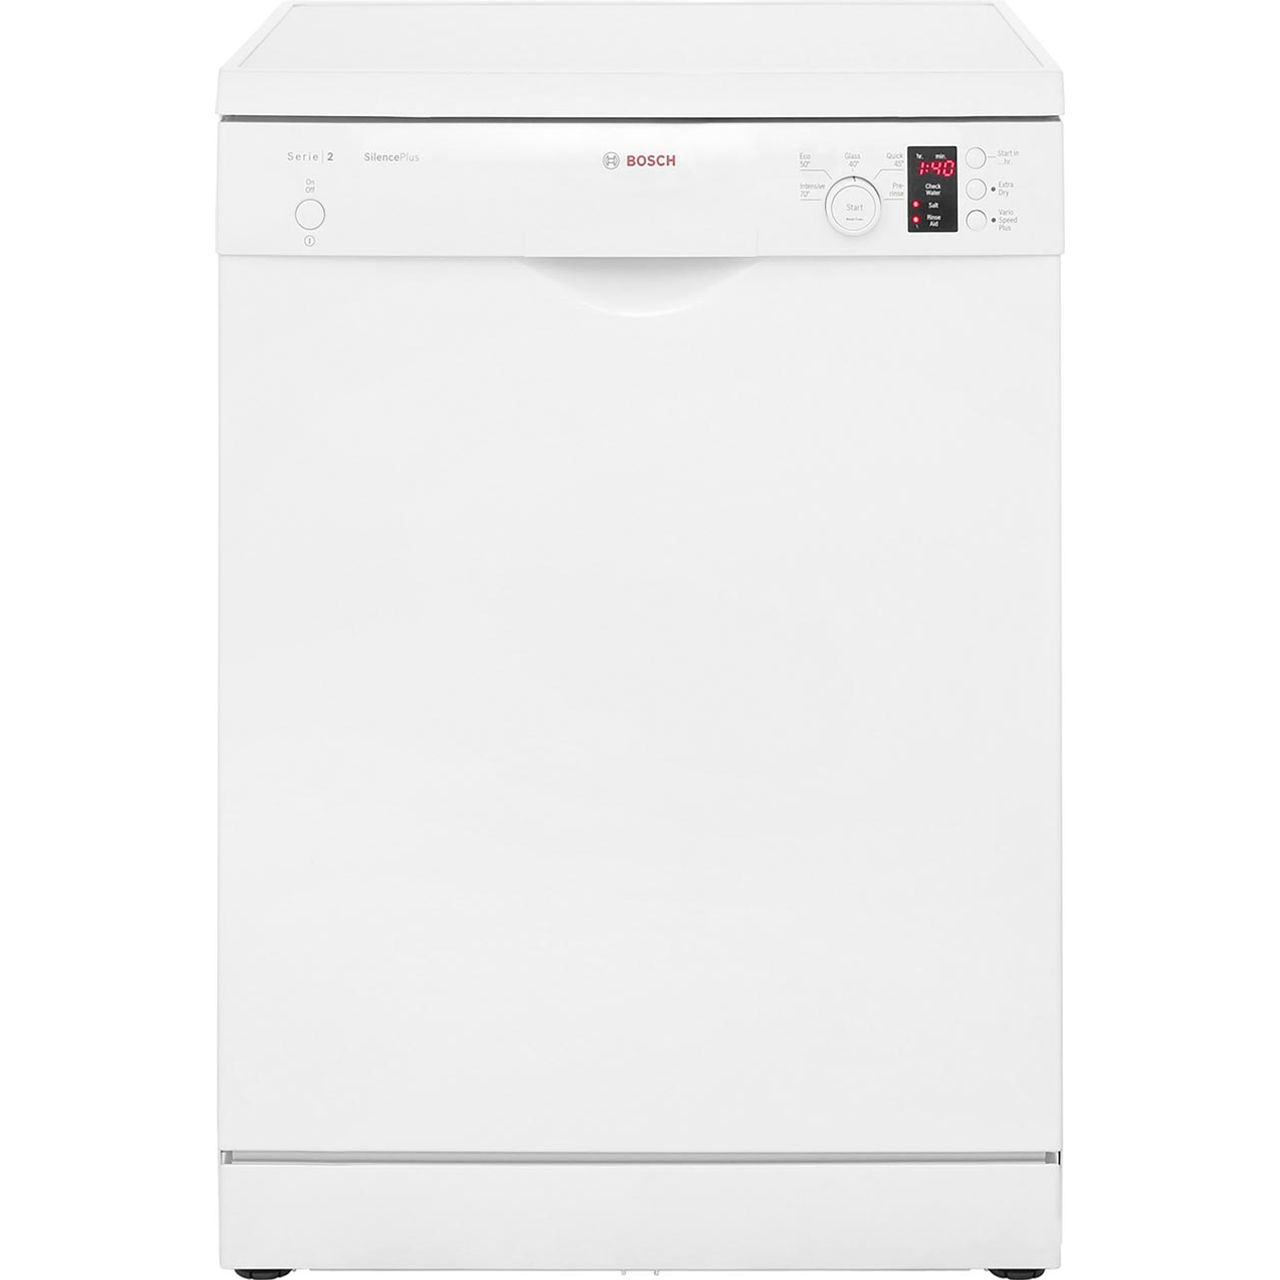 bosch serie 2 sms25ew00g standard dishwasher review. Black Bedroom Furniture Sets. Home Design Ideas